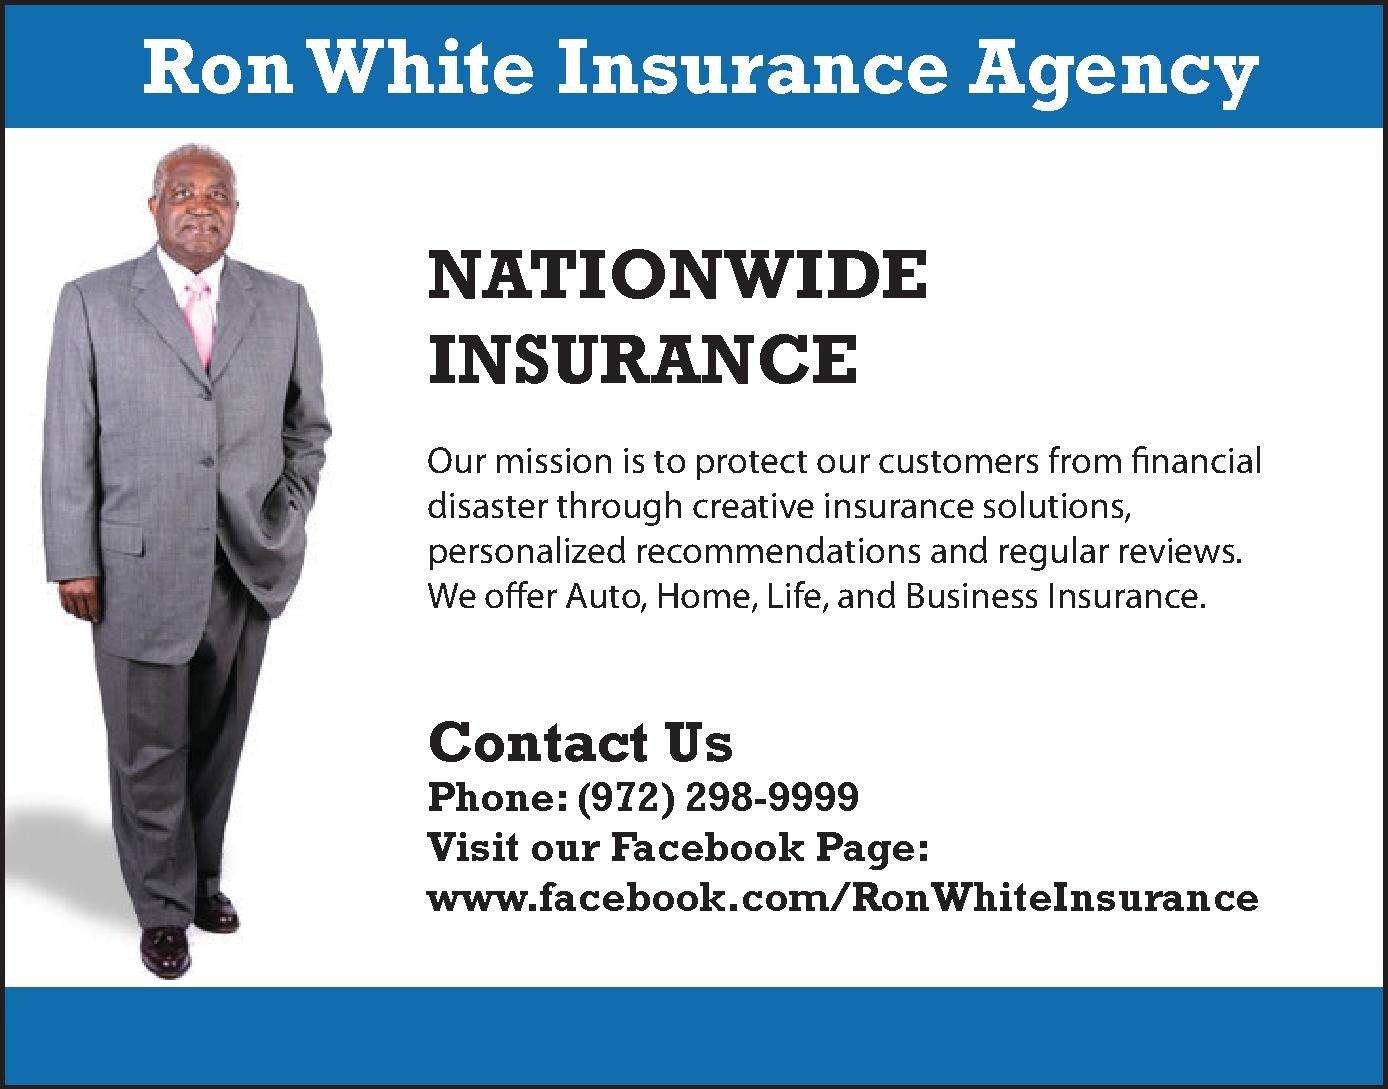 Ron White Insurance Agency